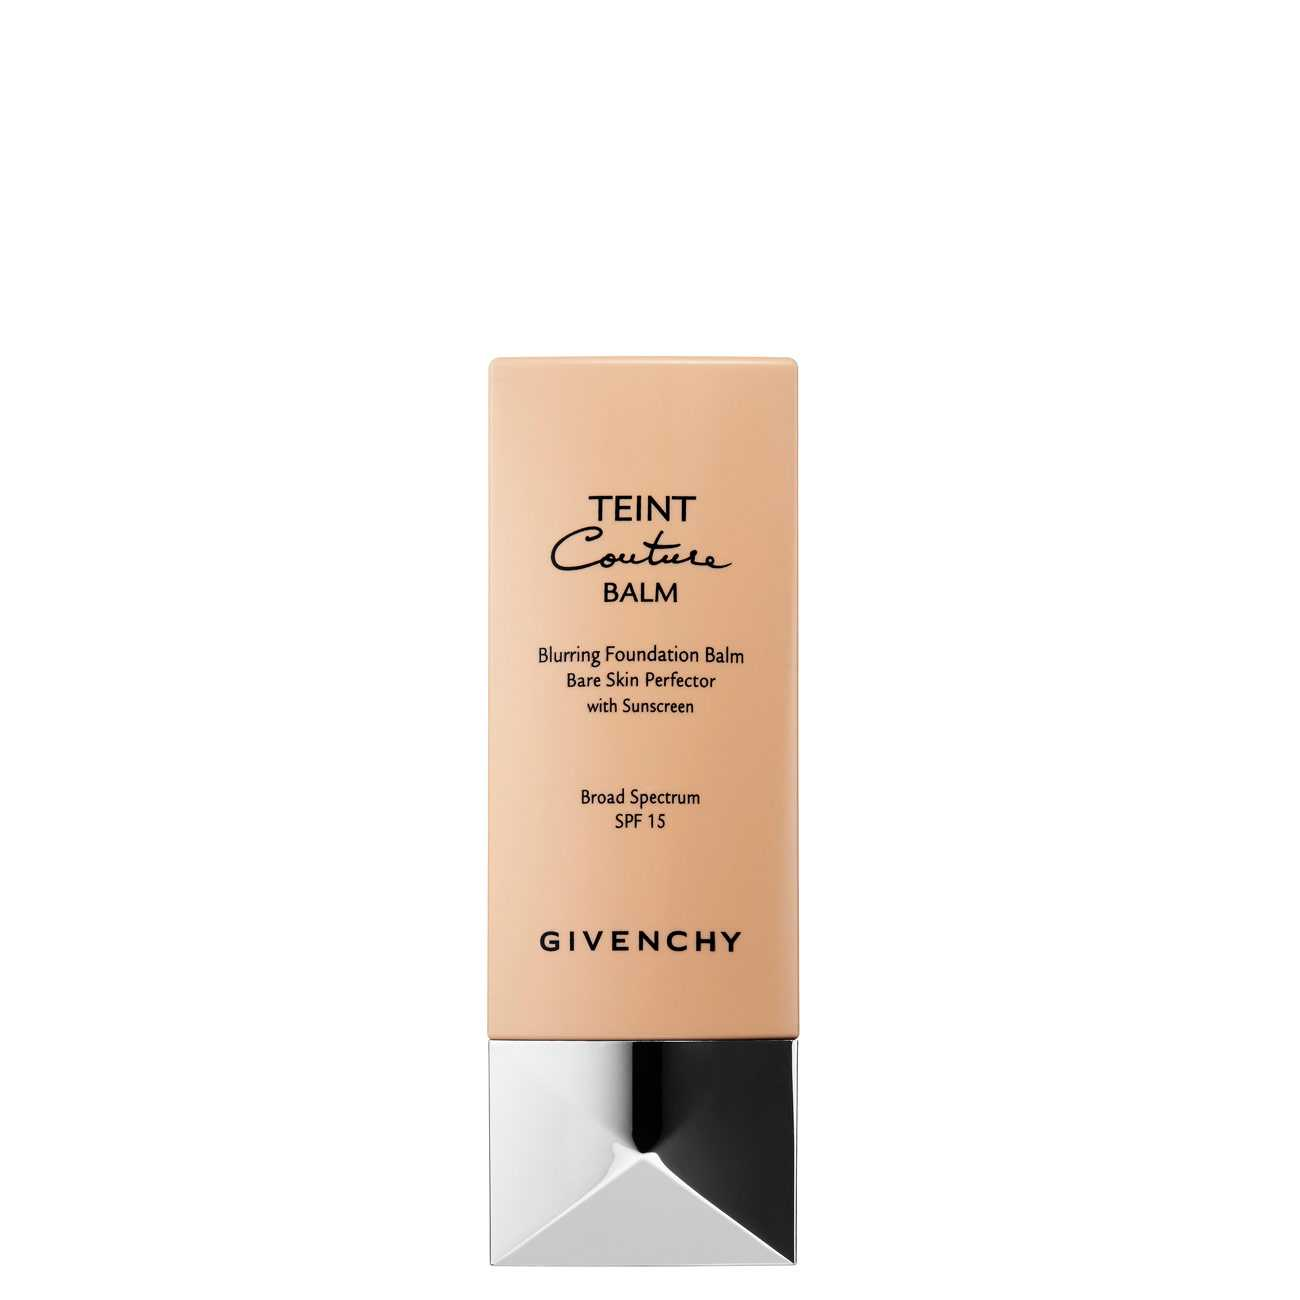 Teint Couture Balm 30 Ml Nude Gold N6 Givenchy imagine 2021 bestvalue.eu